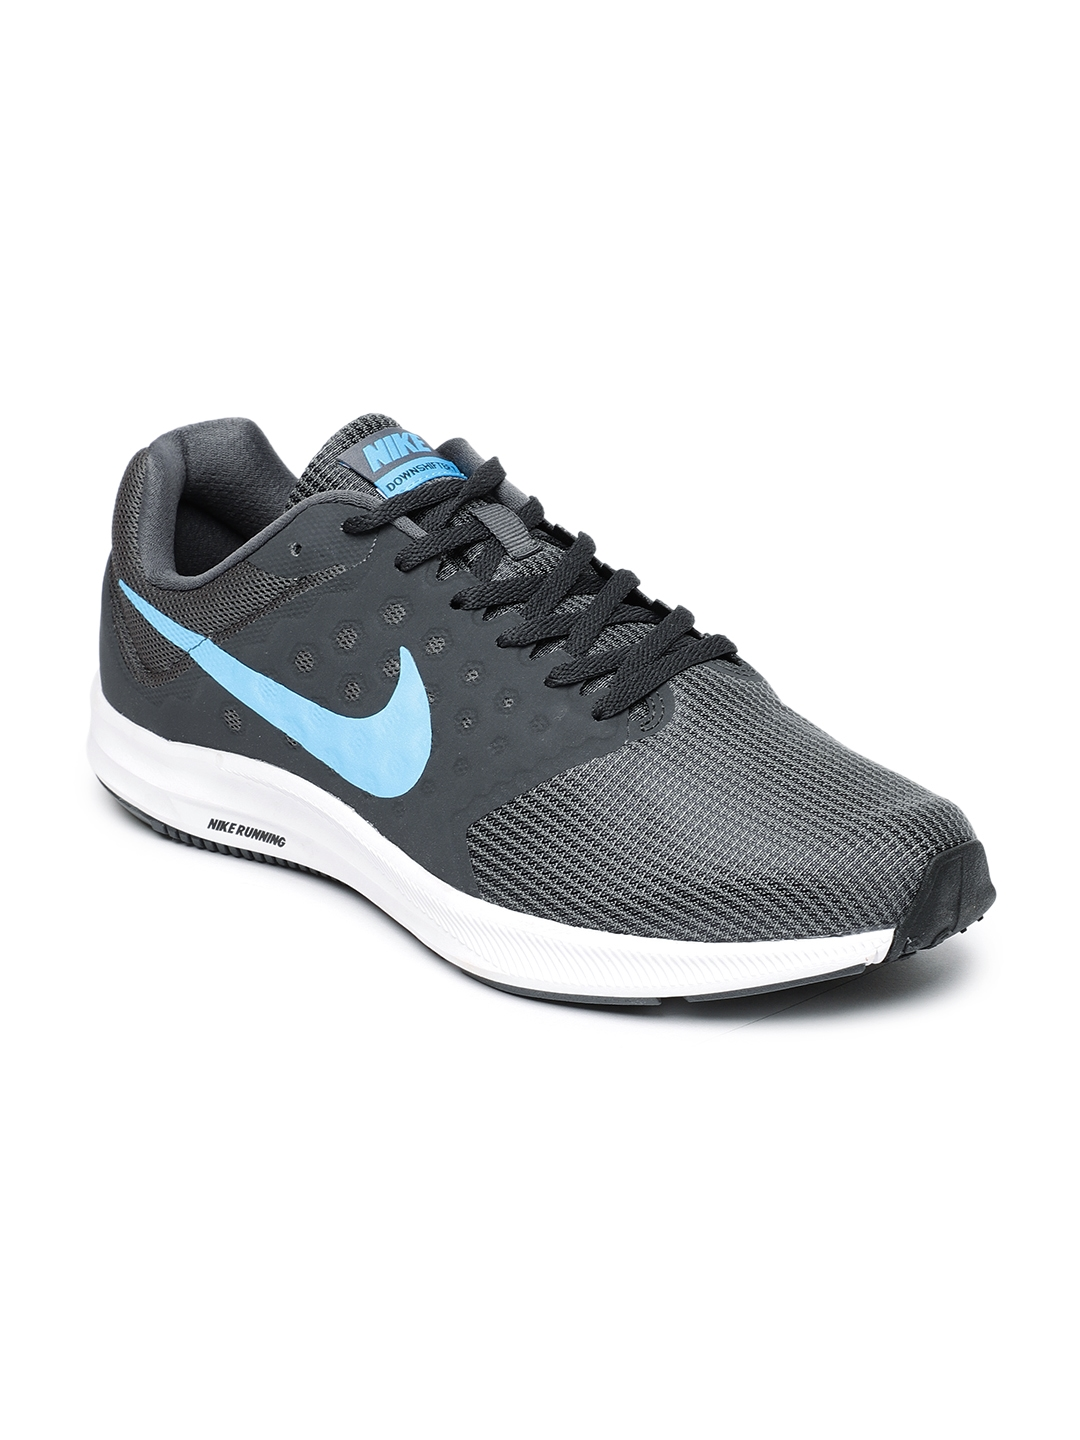 premium selection d8fdf 796cd Nike Men Charcoal Grey Downshifter 7 Running Shoes